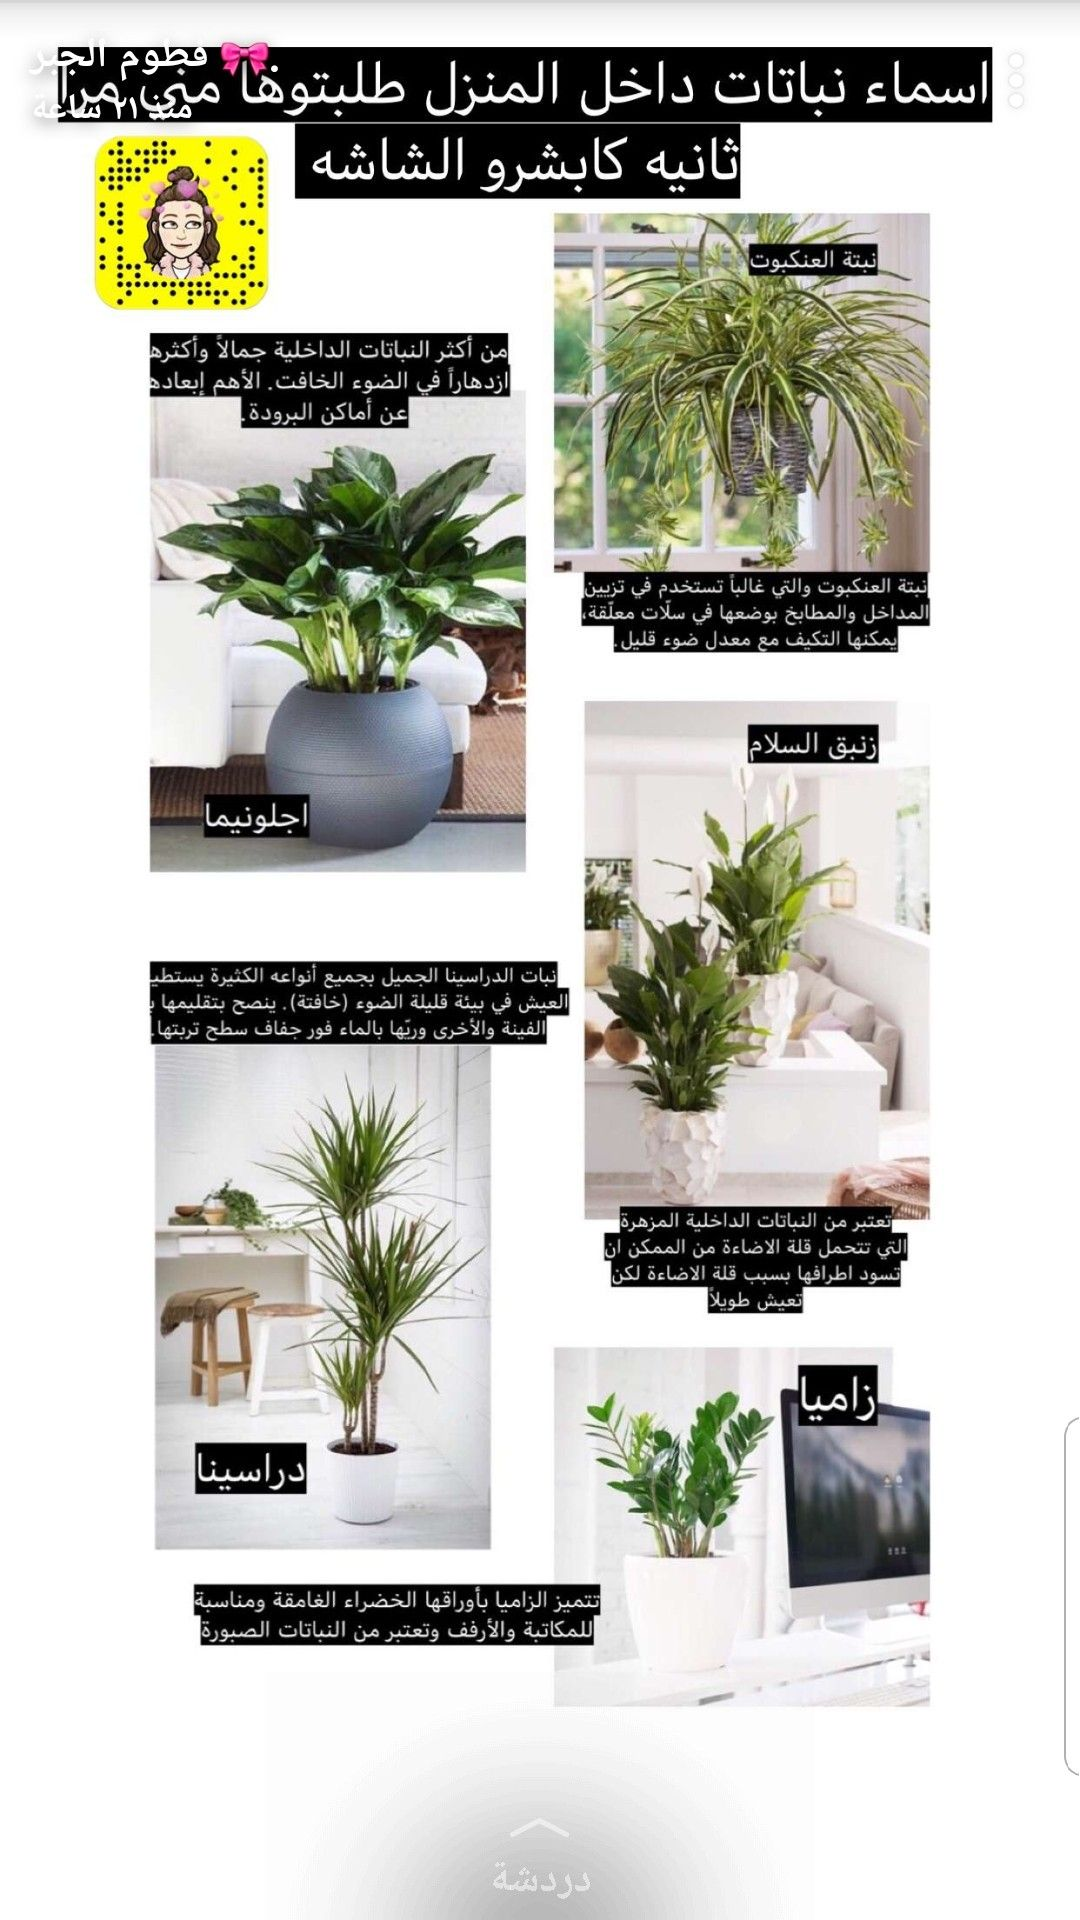 Pin By Sumaya Thani Ali Alkhaifi On House Plants House Plants Decor Plant Decor Country Garden Decor